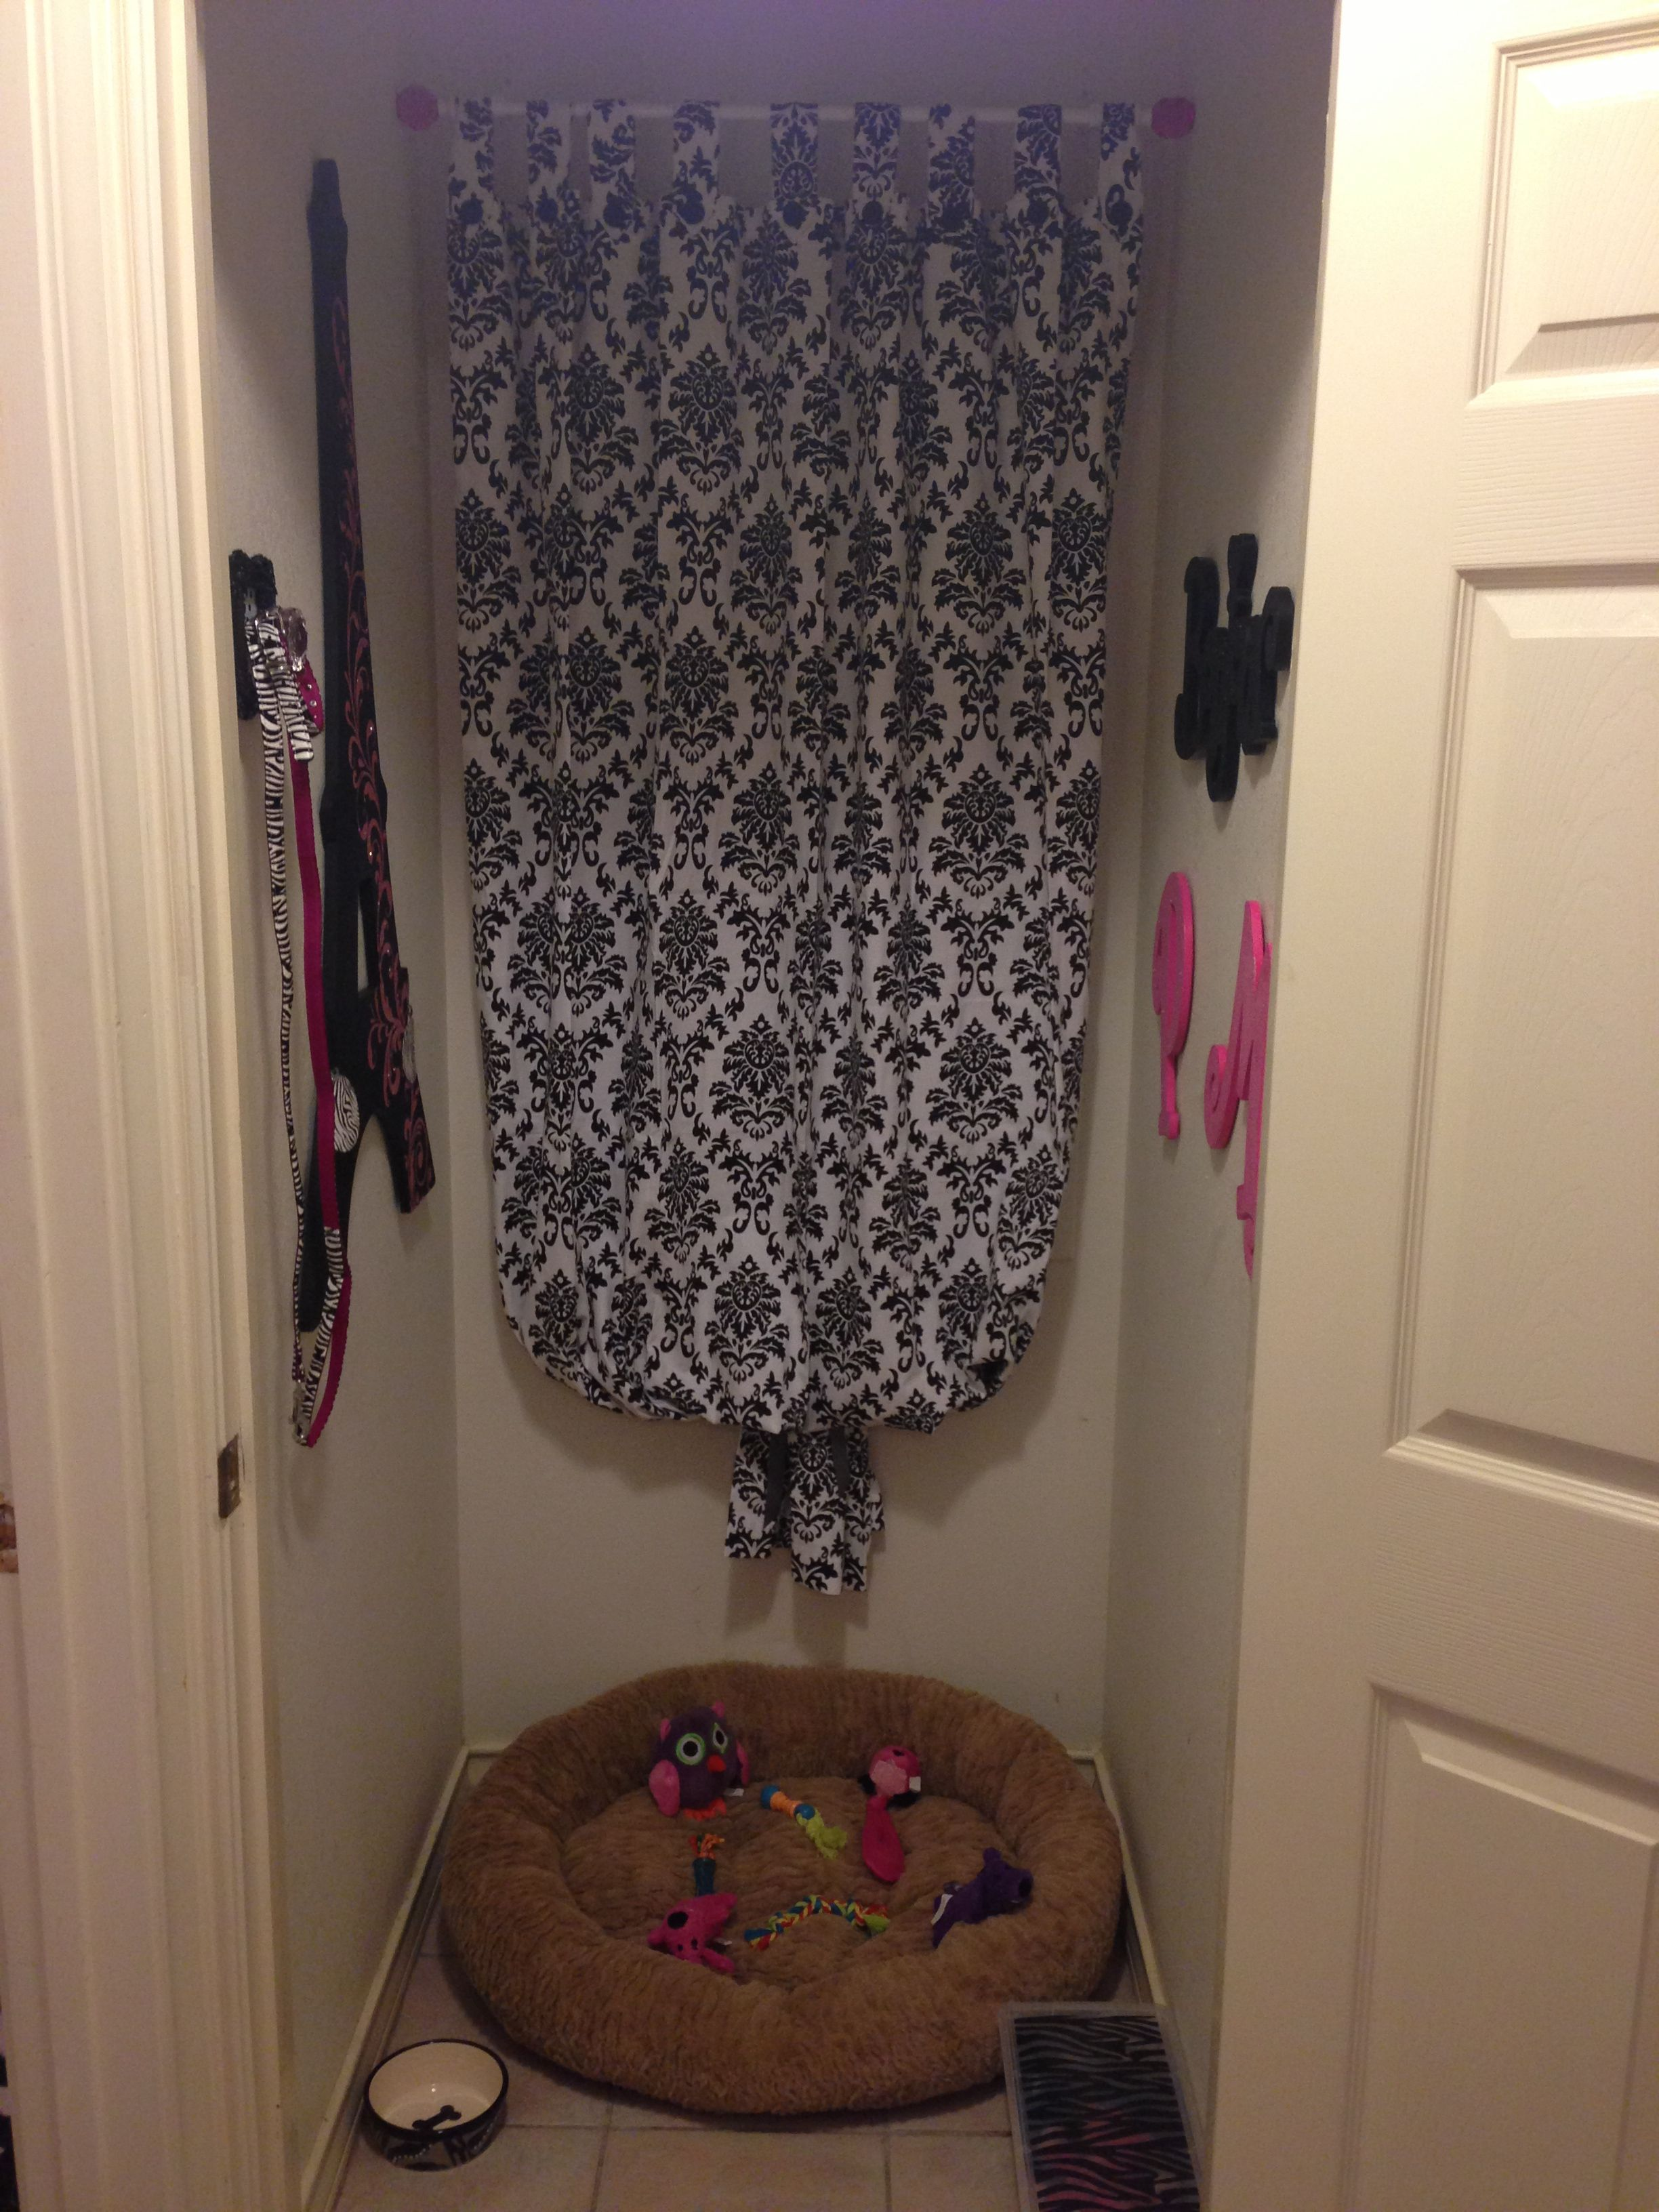 My baby girls room! She's a French bulldog so had to make